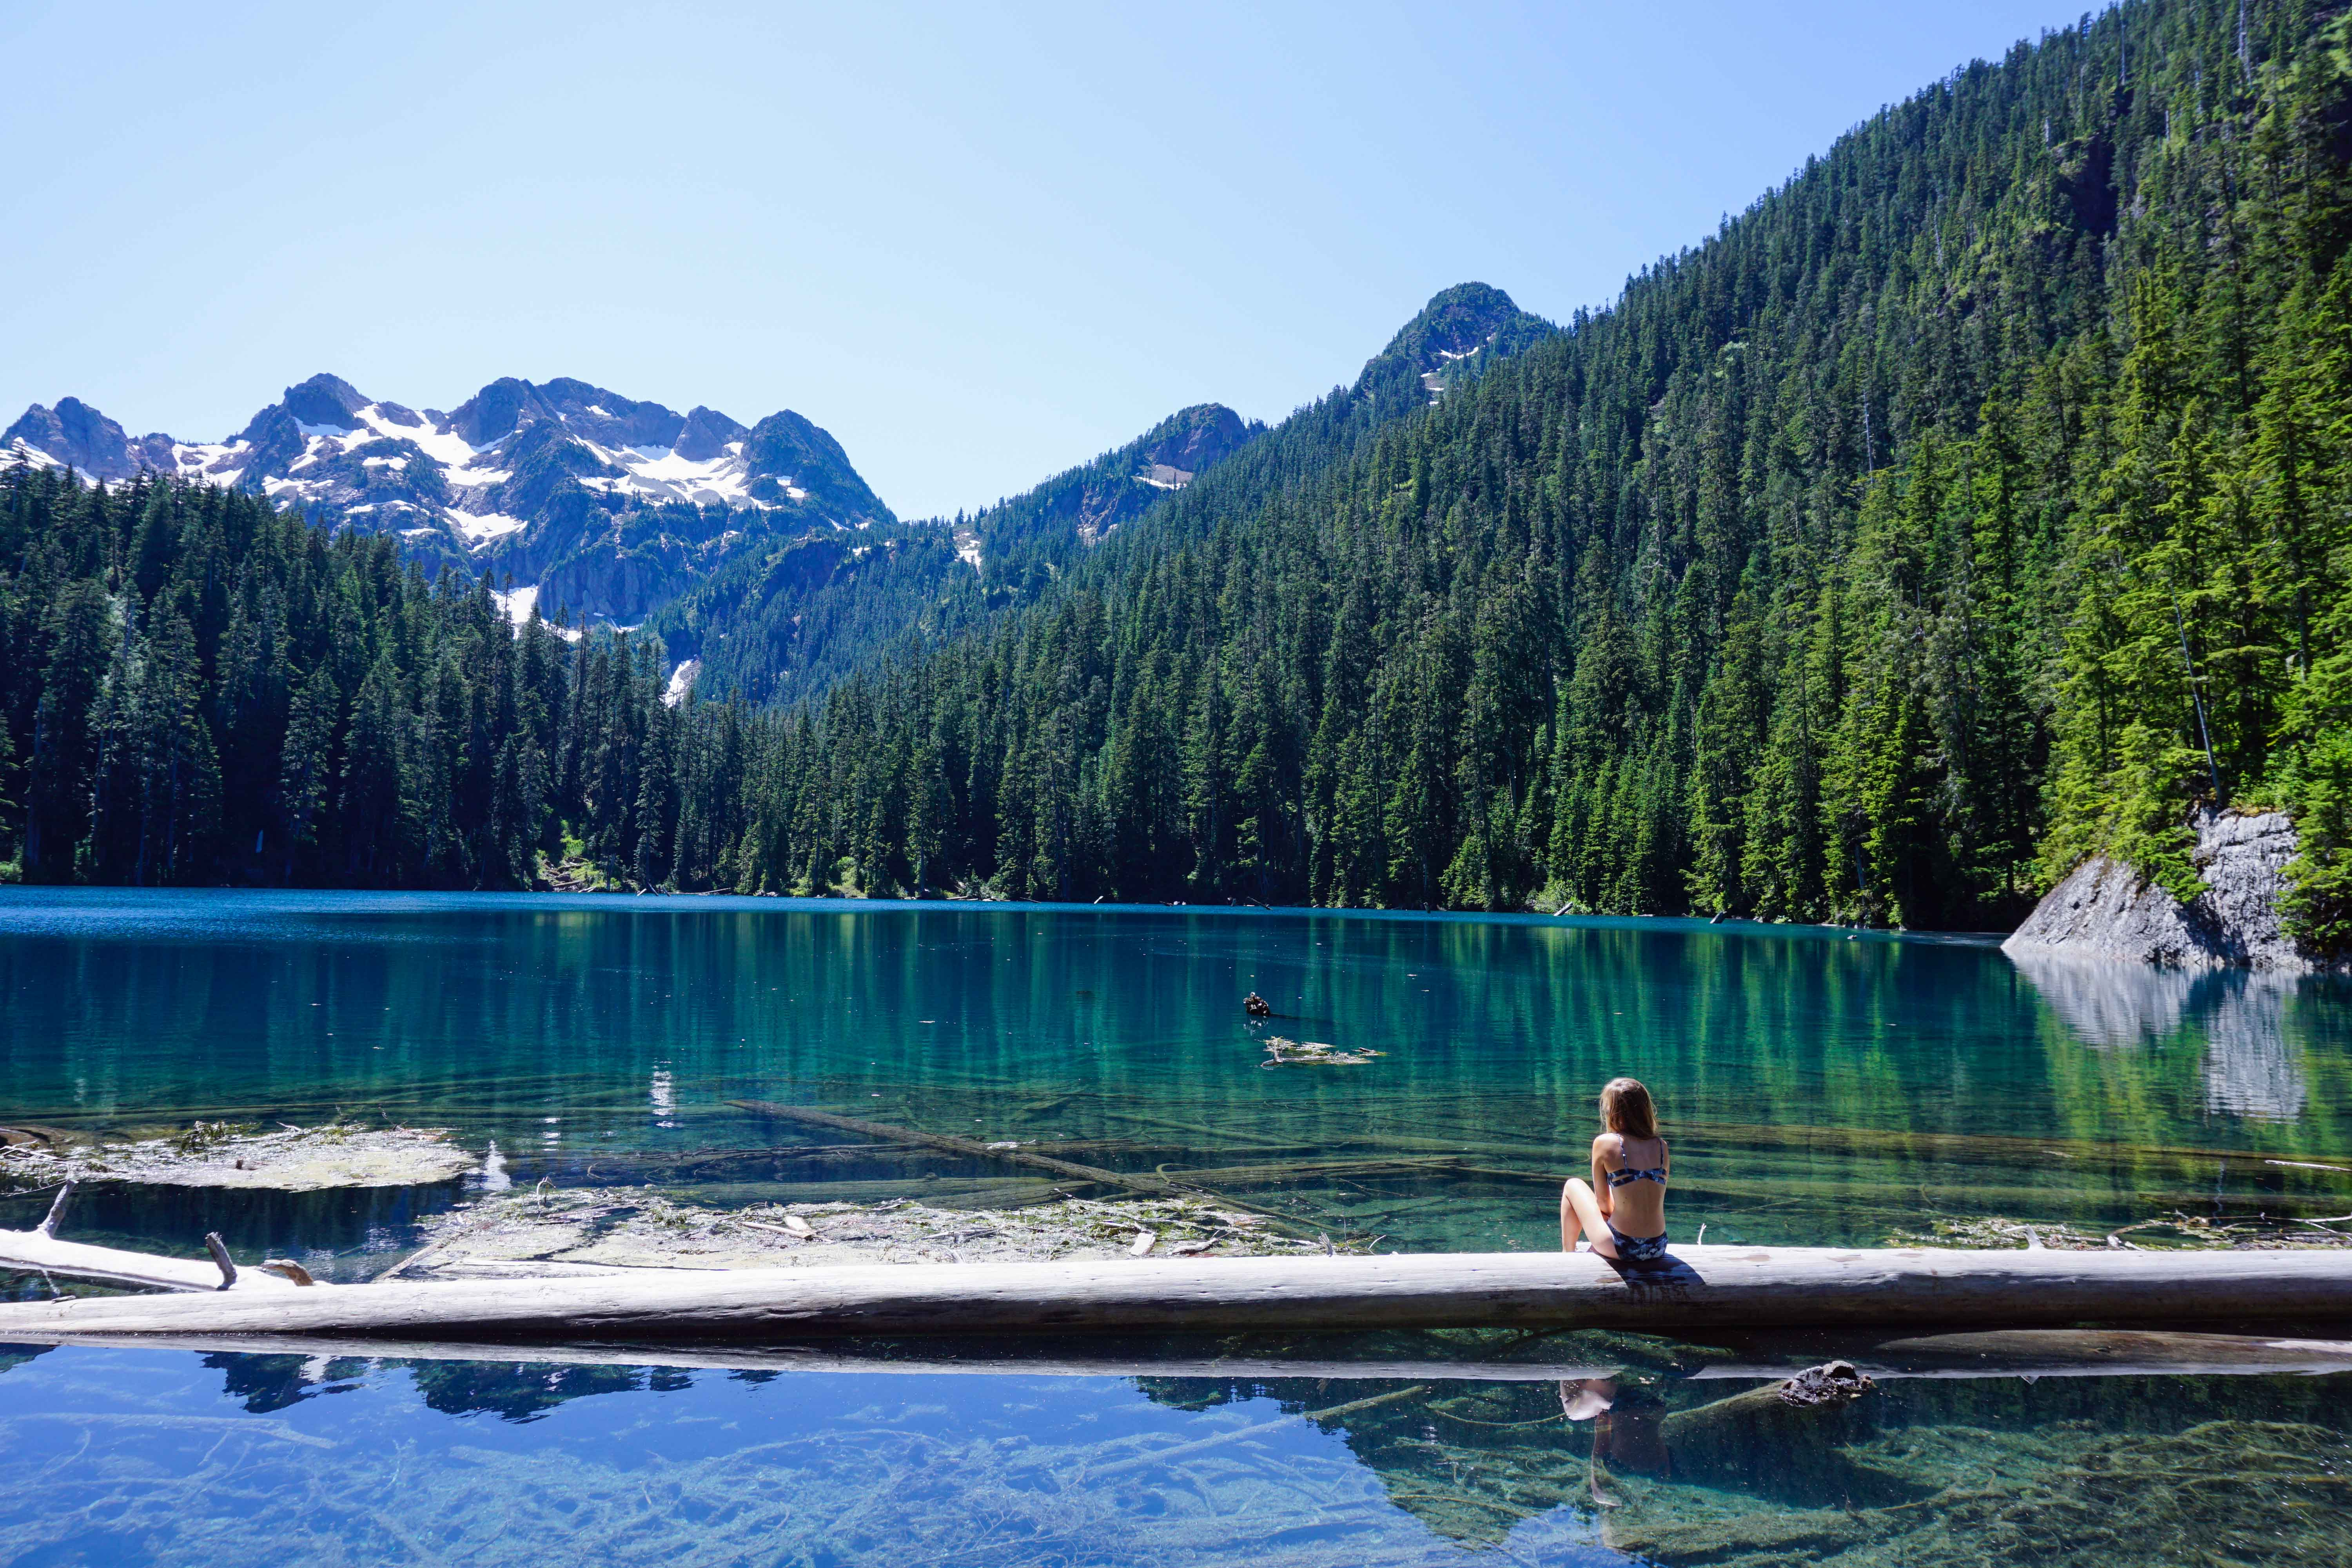 Woman looks across blue lake and mountains